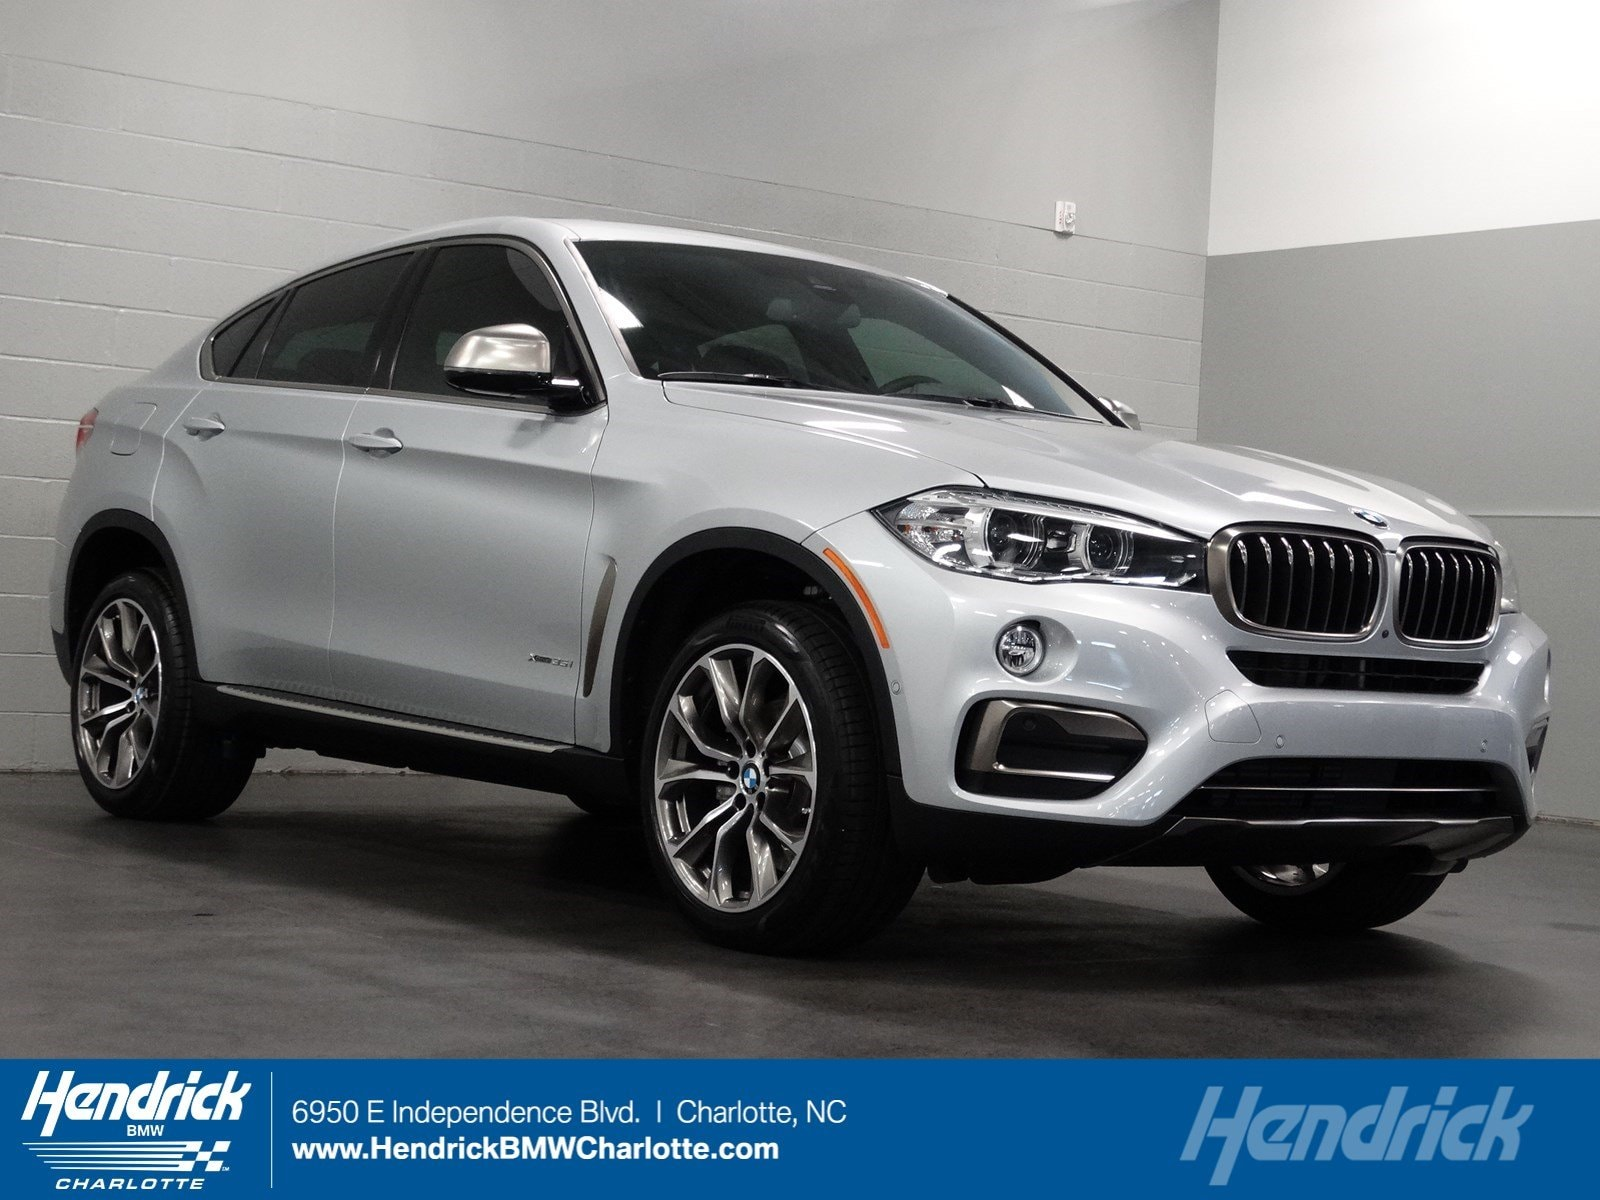 New 2019 Bmw X6 Suv For Sale In Charlotte Nc Near Matthews Concord Ballantyne Nc Rock Hill Sc Vin 5uxku2c58k0z63052